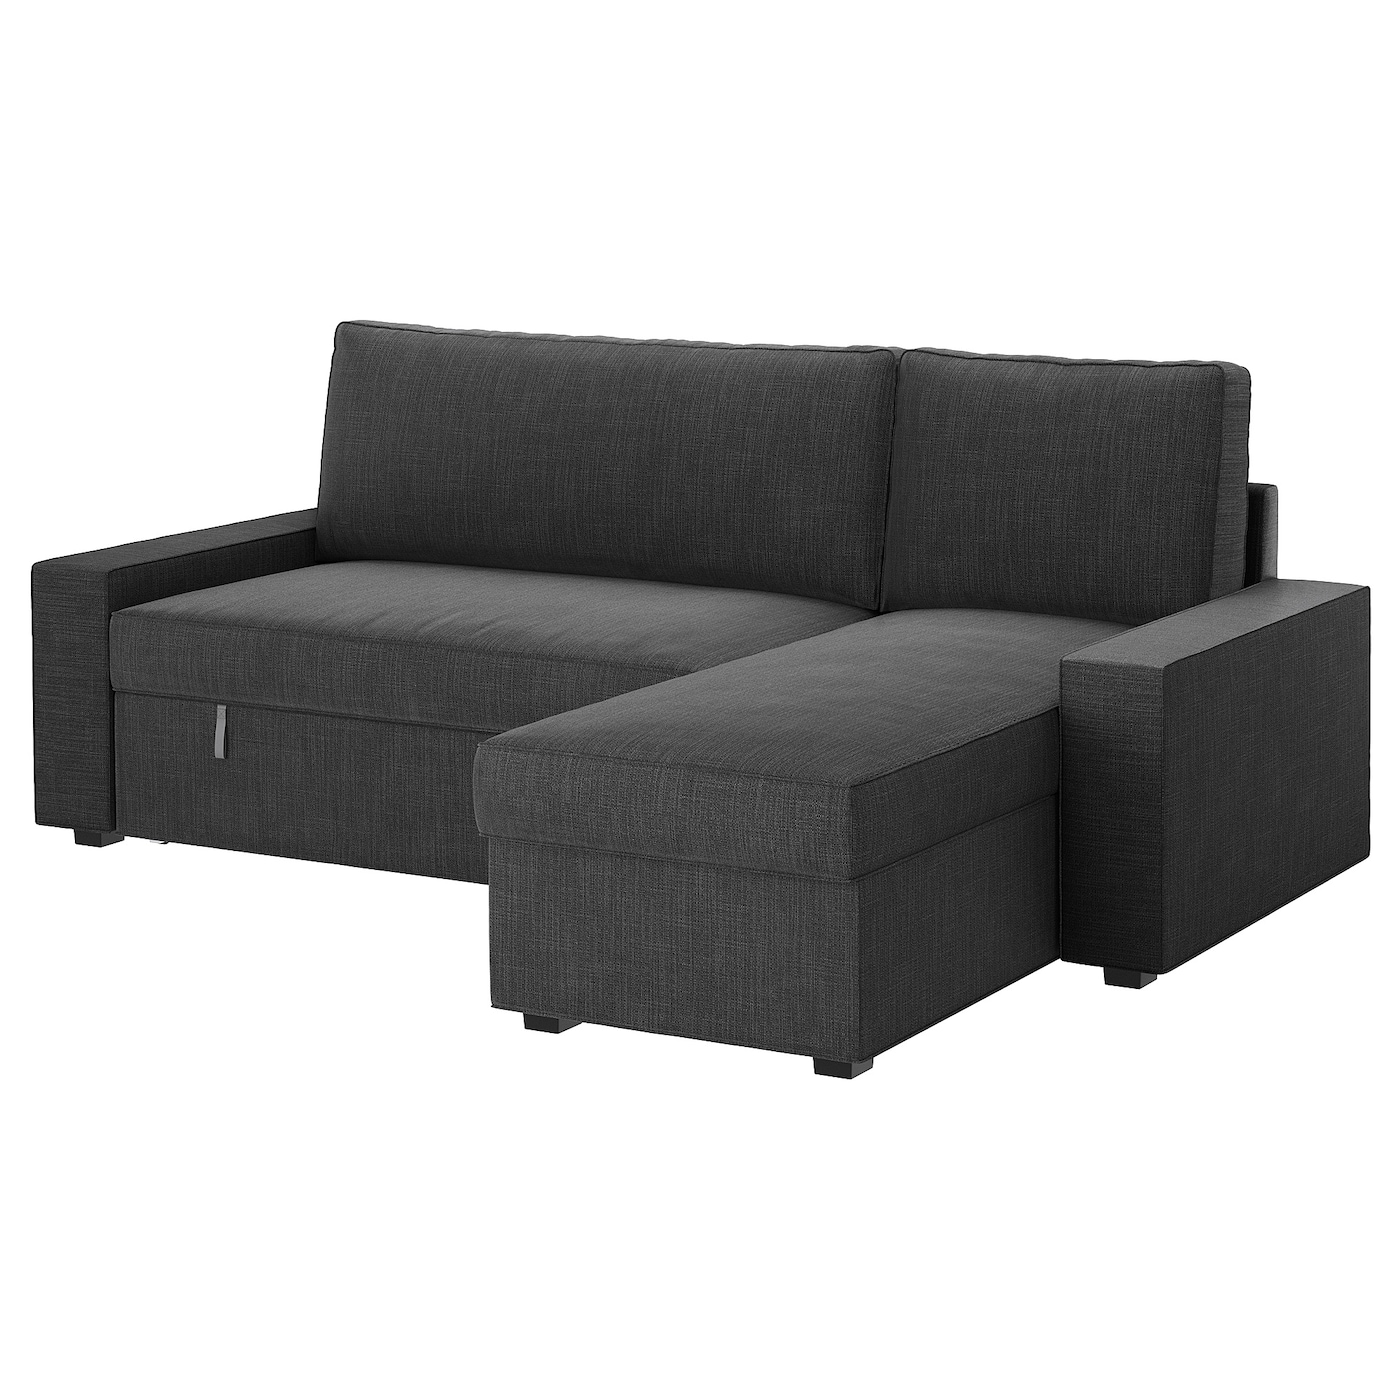 Vilasund sofa bed with chaise longue hillared anthracite for 90 cm sofa bed